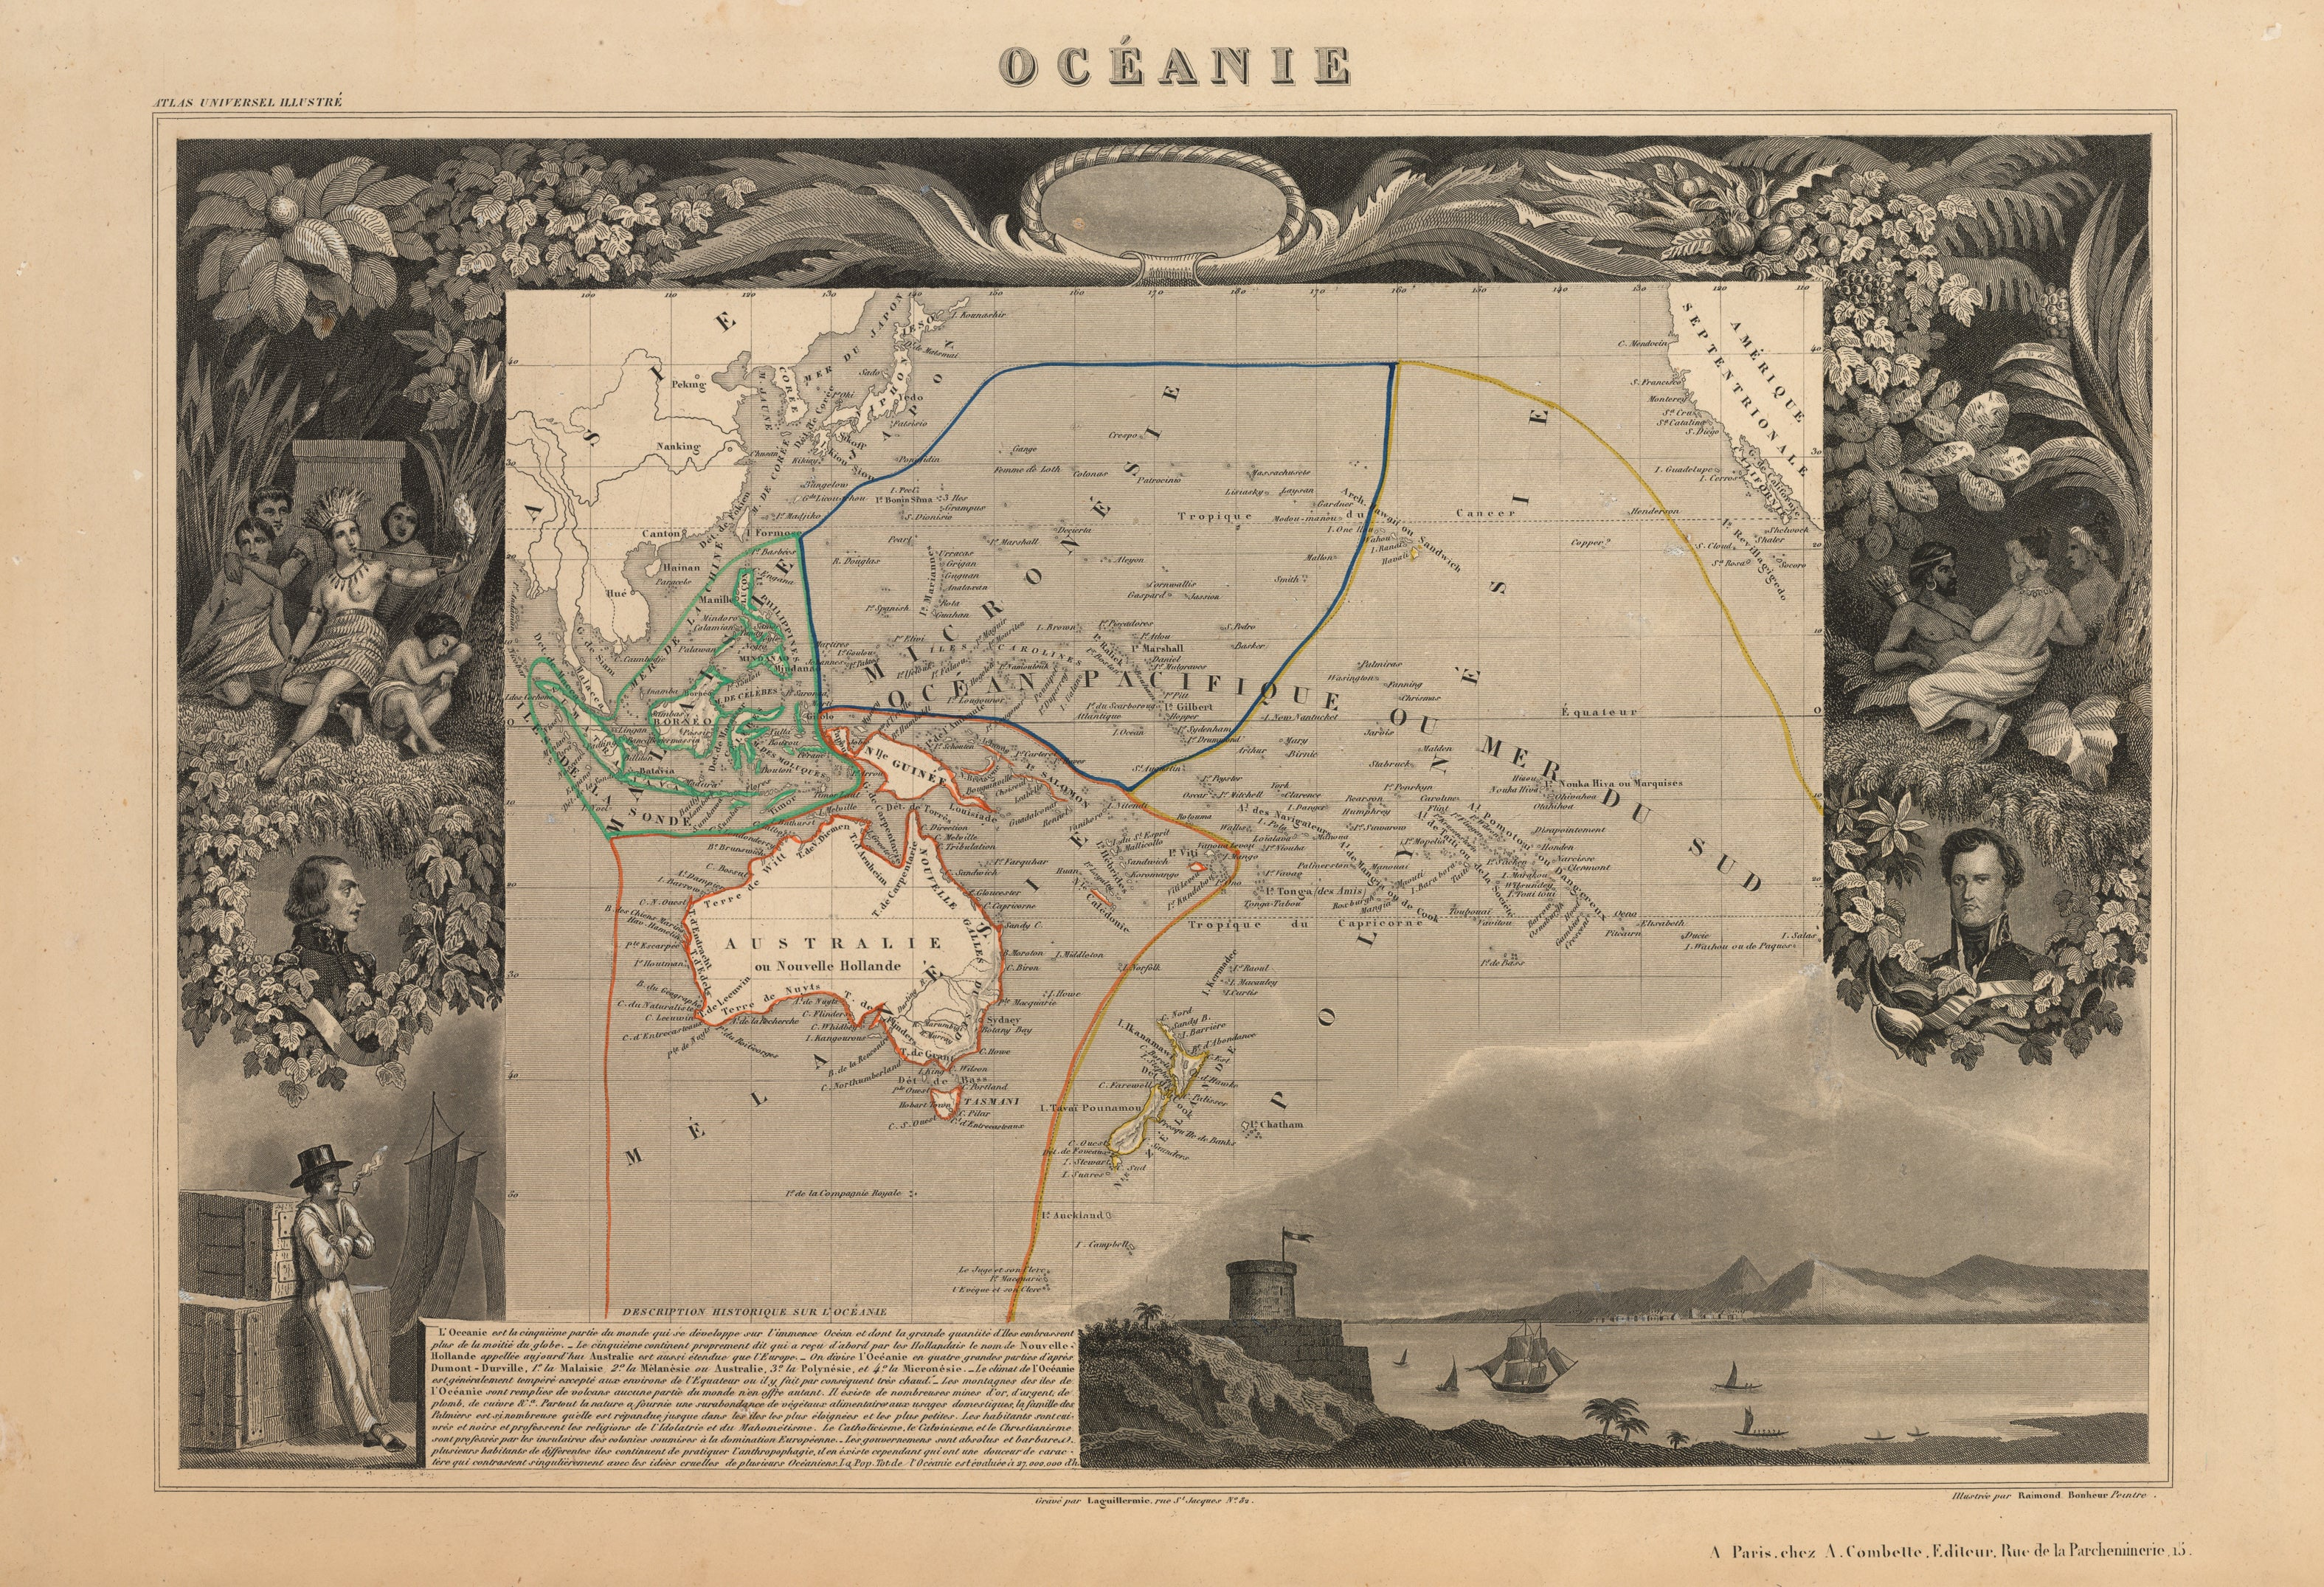 Oceanie, Pacific Ocean, Victor Levasseur, 19th Century, Antique Map, Australia, South Pacific, California coast